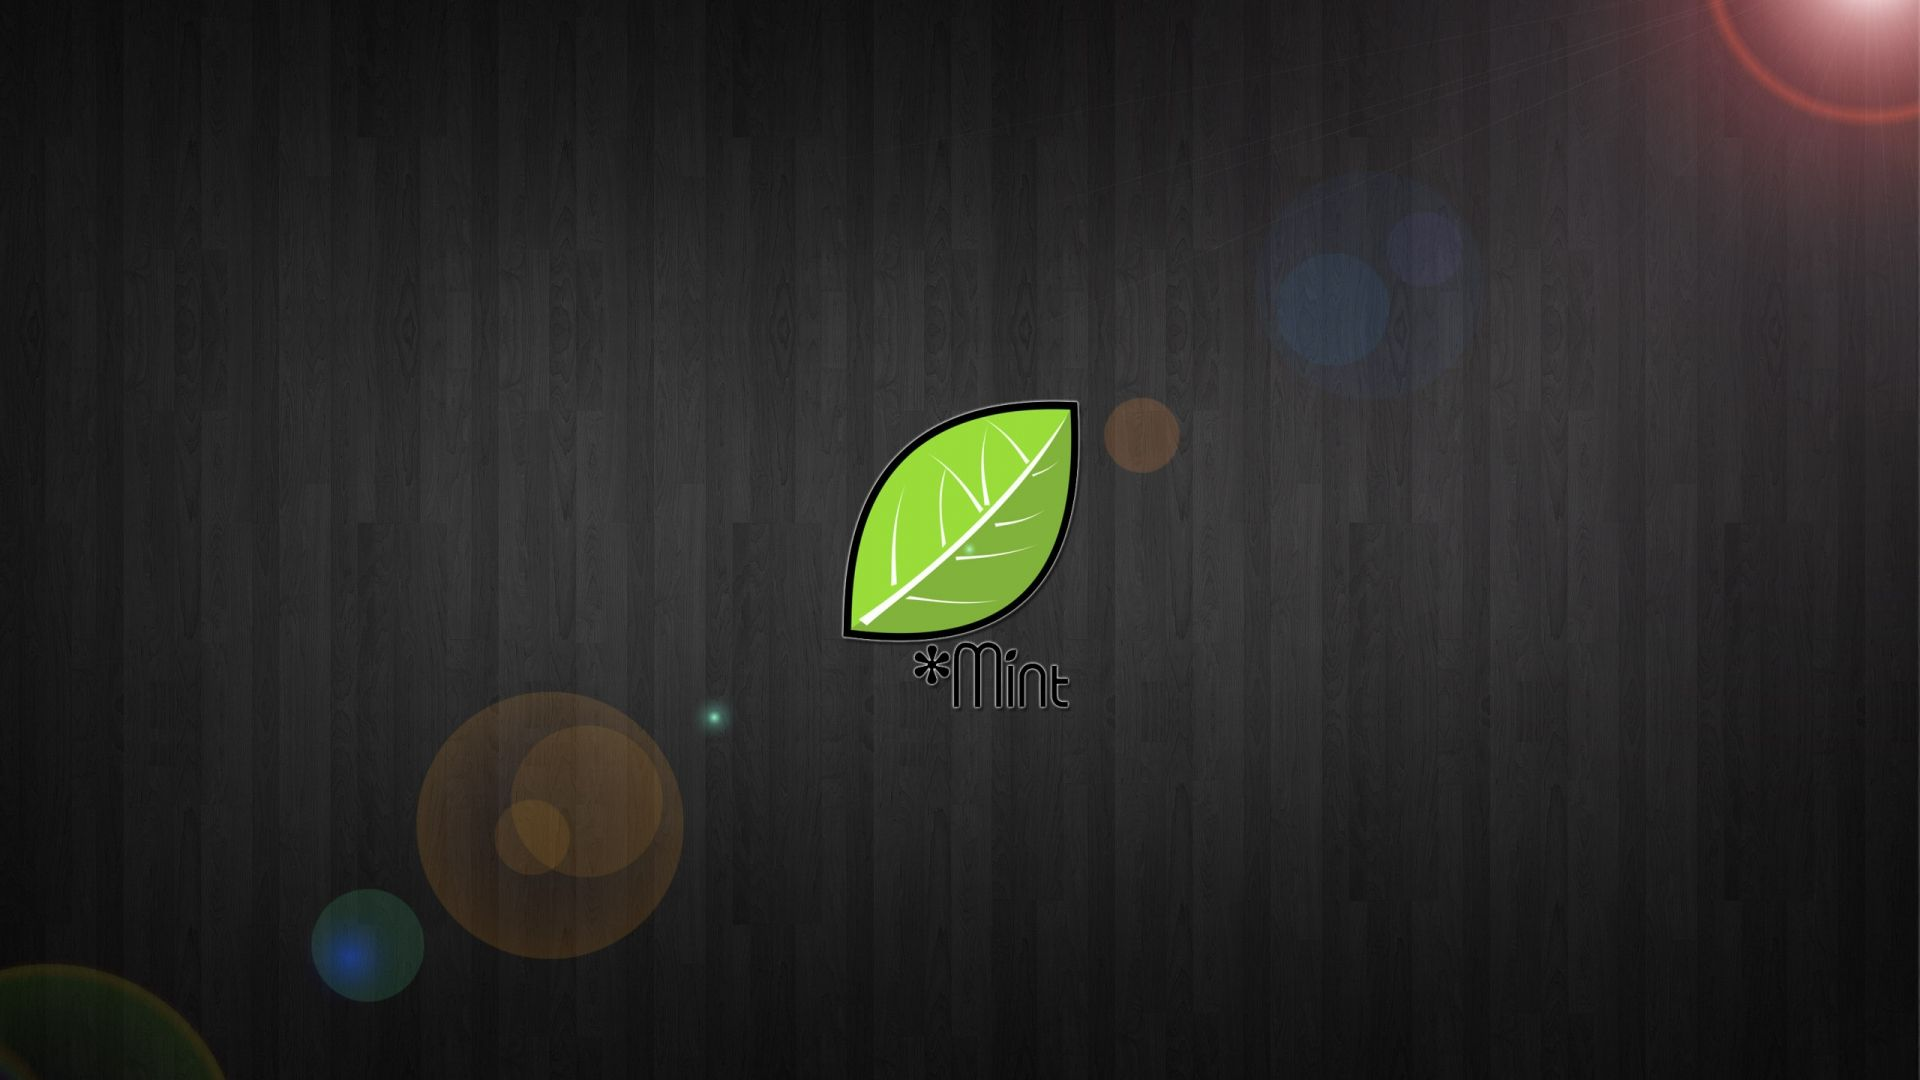 Animated wallpapers in Ubuntu .Linux Mint